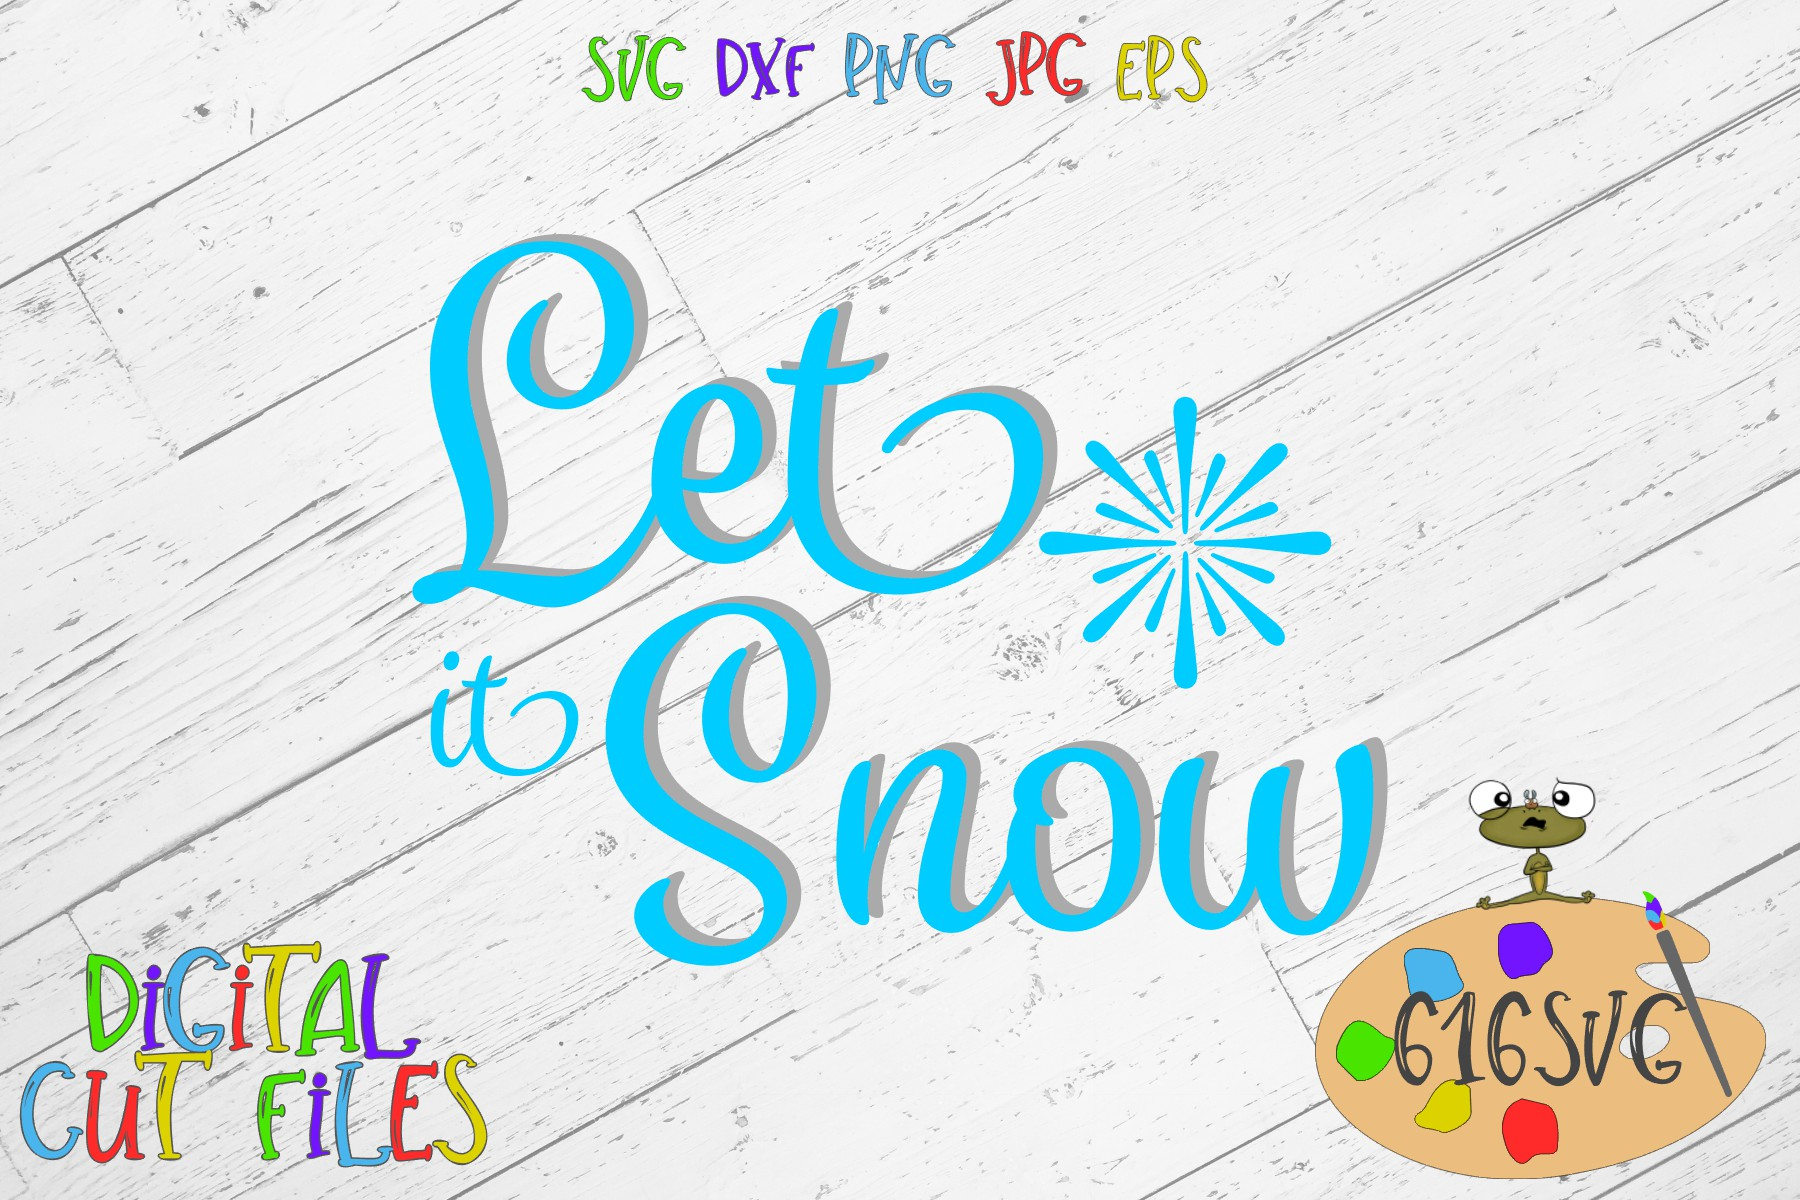 Download Free Let It Snow Svg Dxf Graphic By 616svg Creative Fabrica for Cricut Explore, Silhouette and other cutting machines.